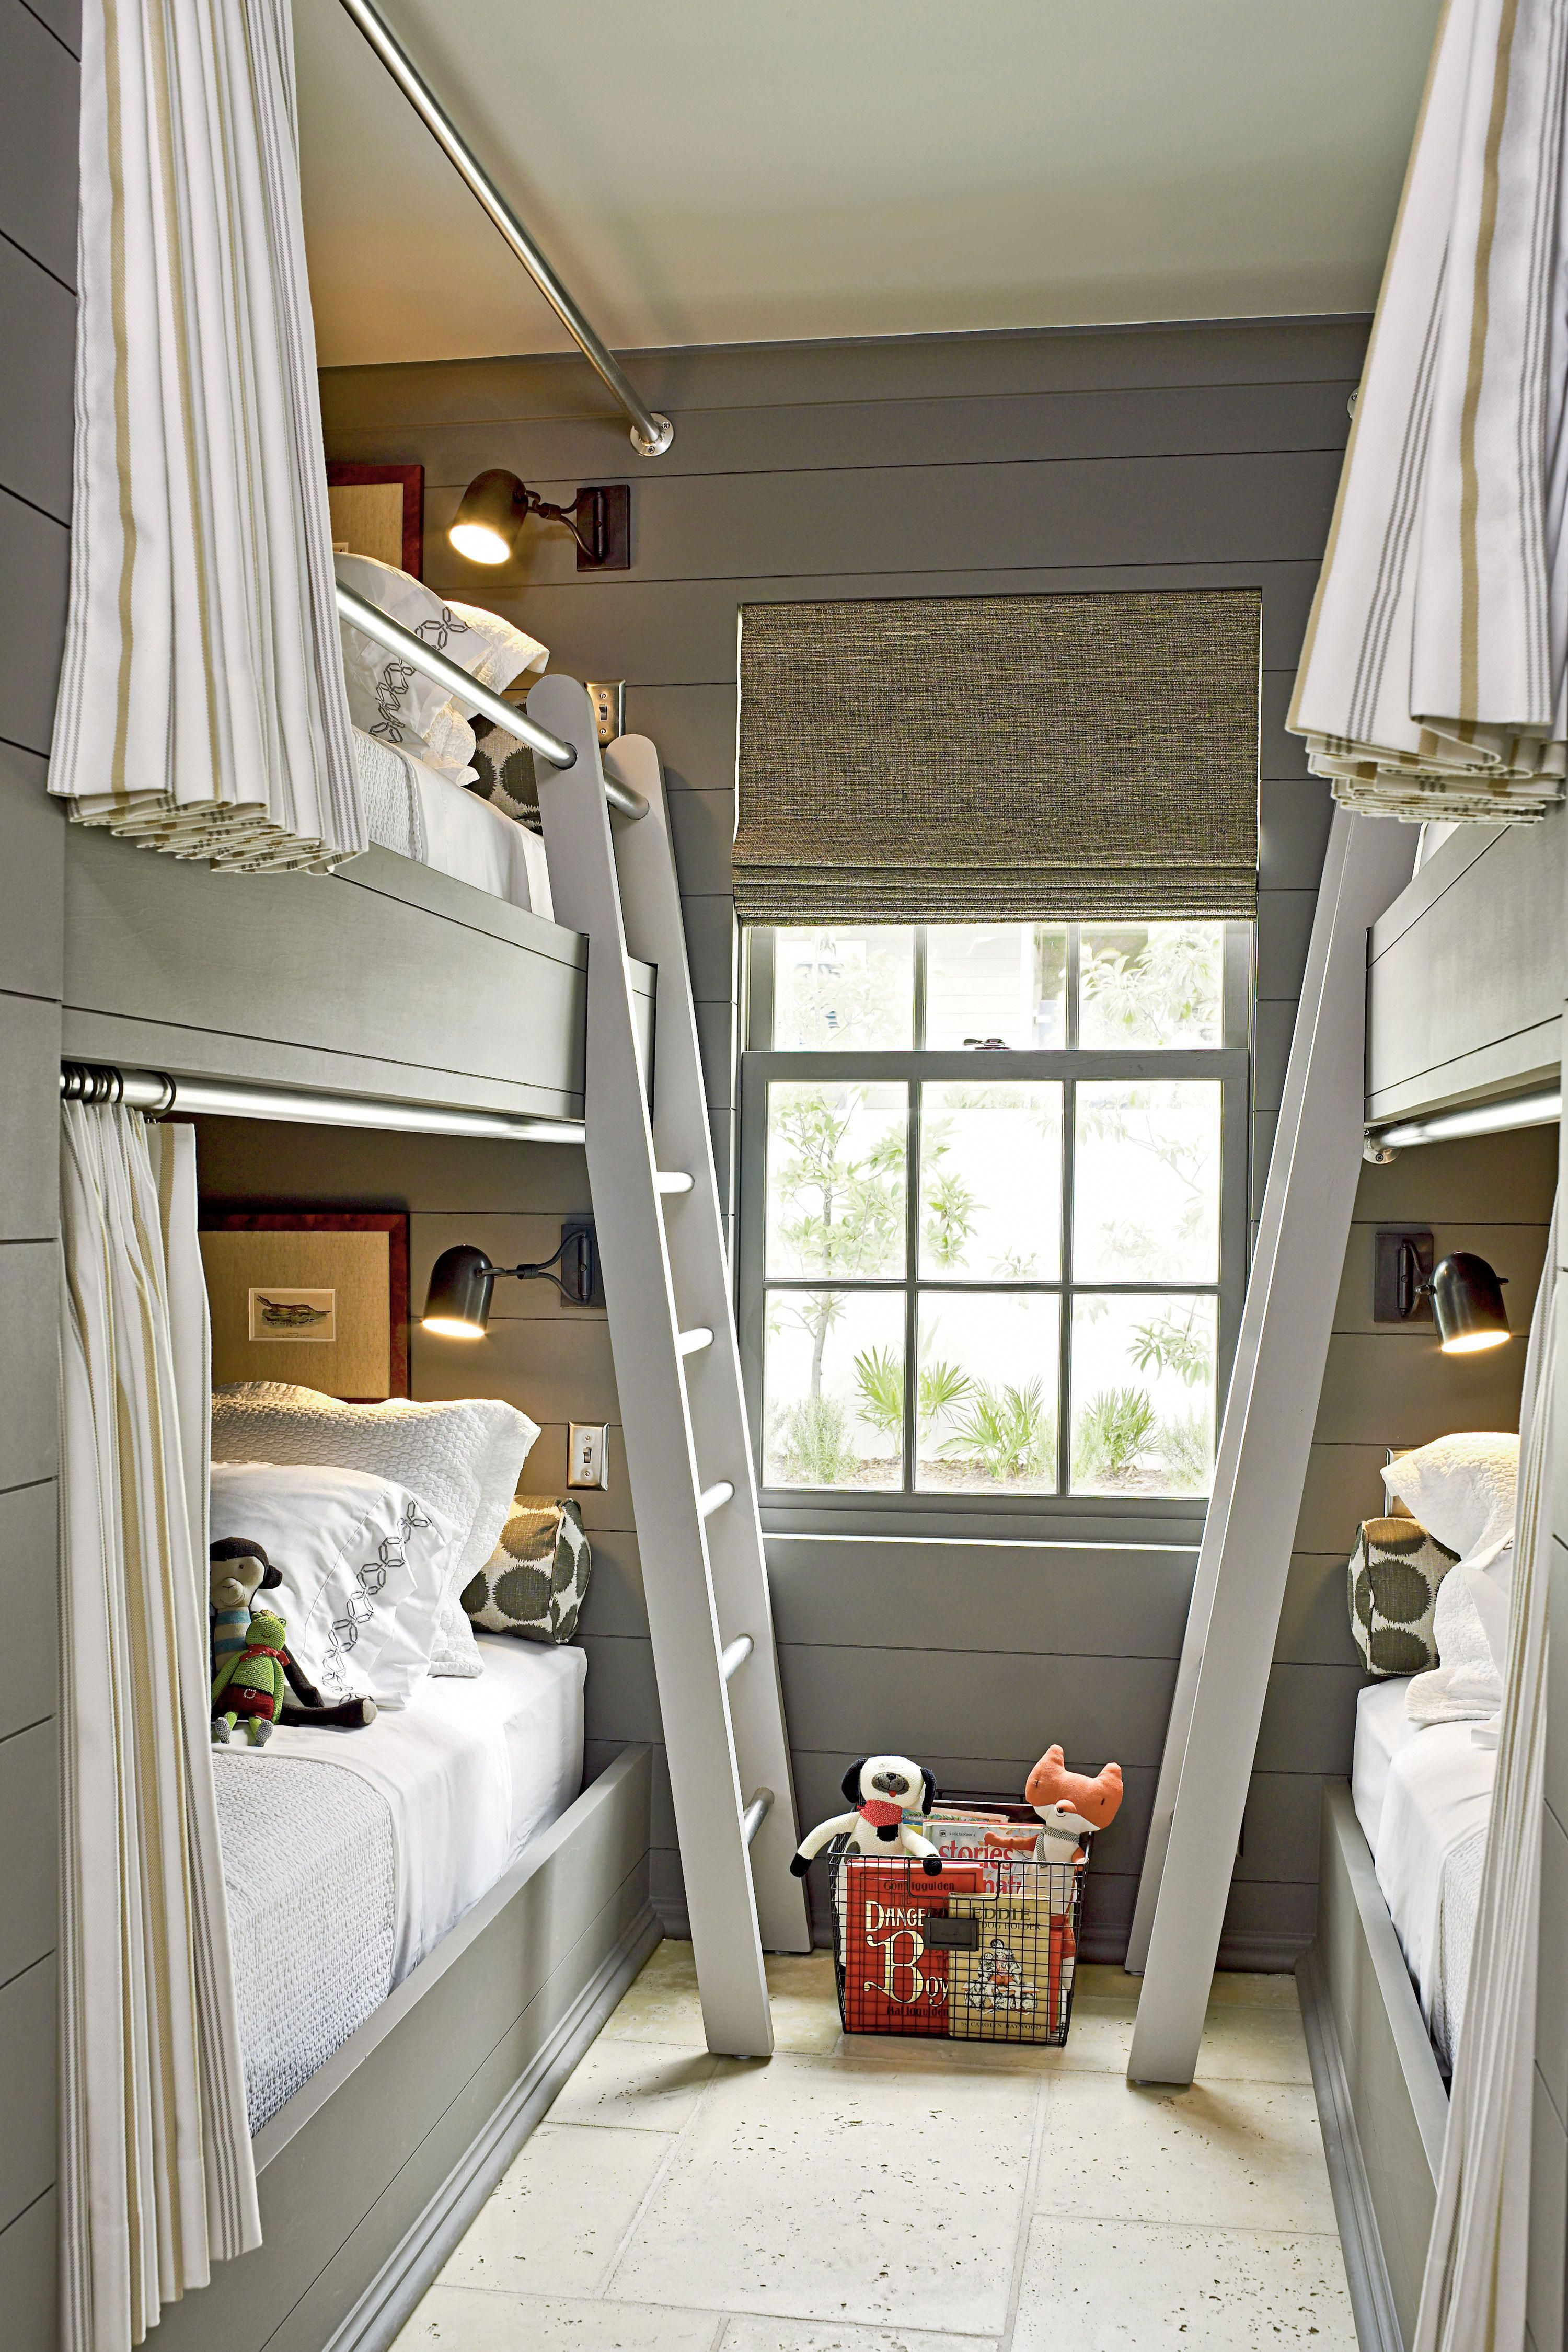 Loft bed with slide out desk  This boysu bunk room from our Rosemary Beach Ultimate Beach House is